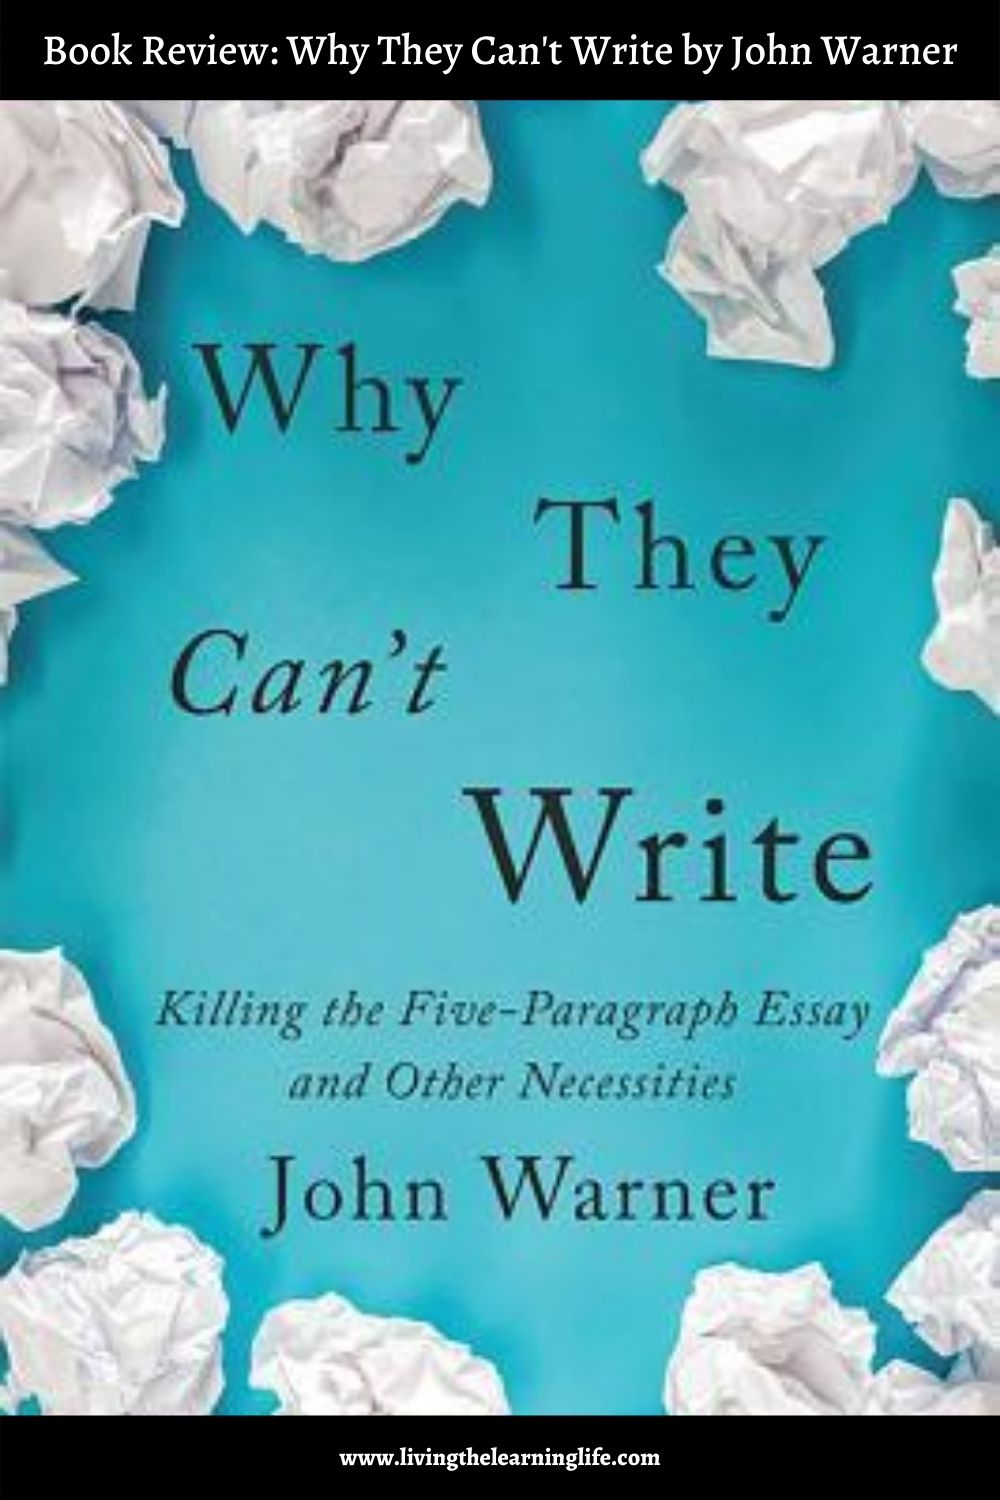 book review why they can't write by john warner